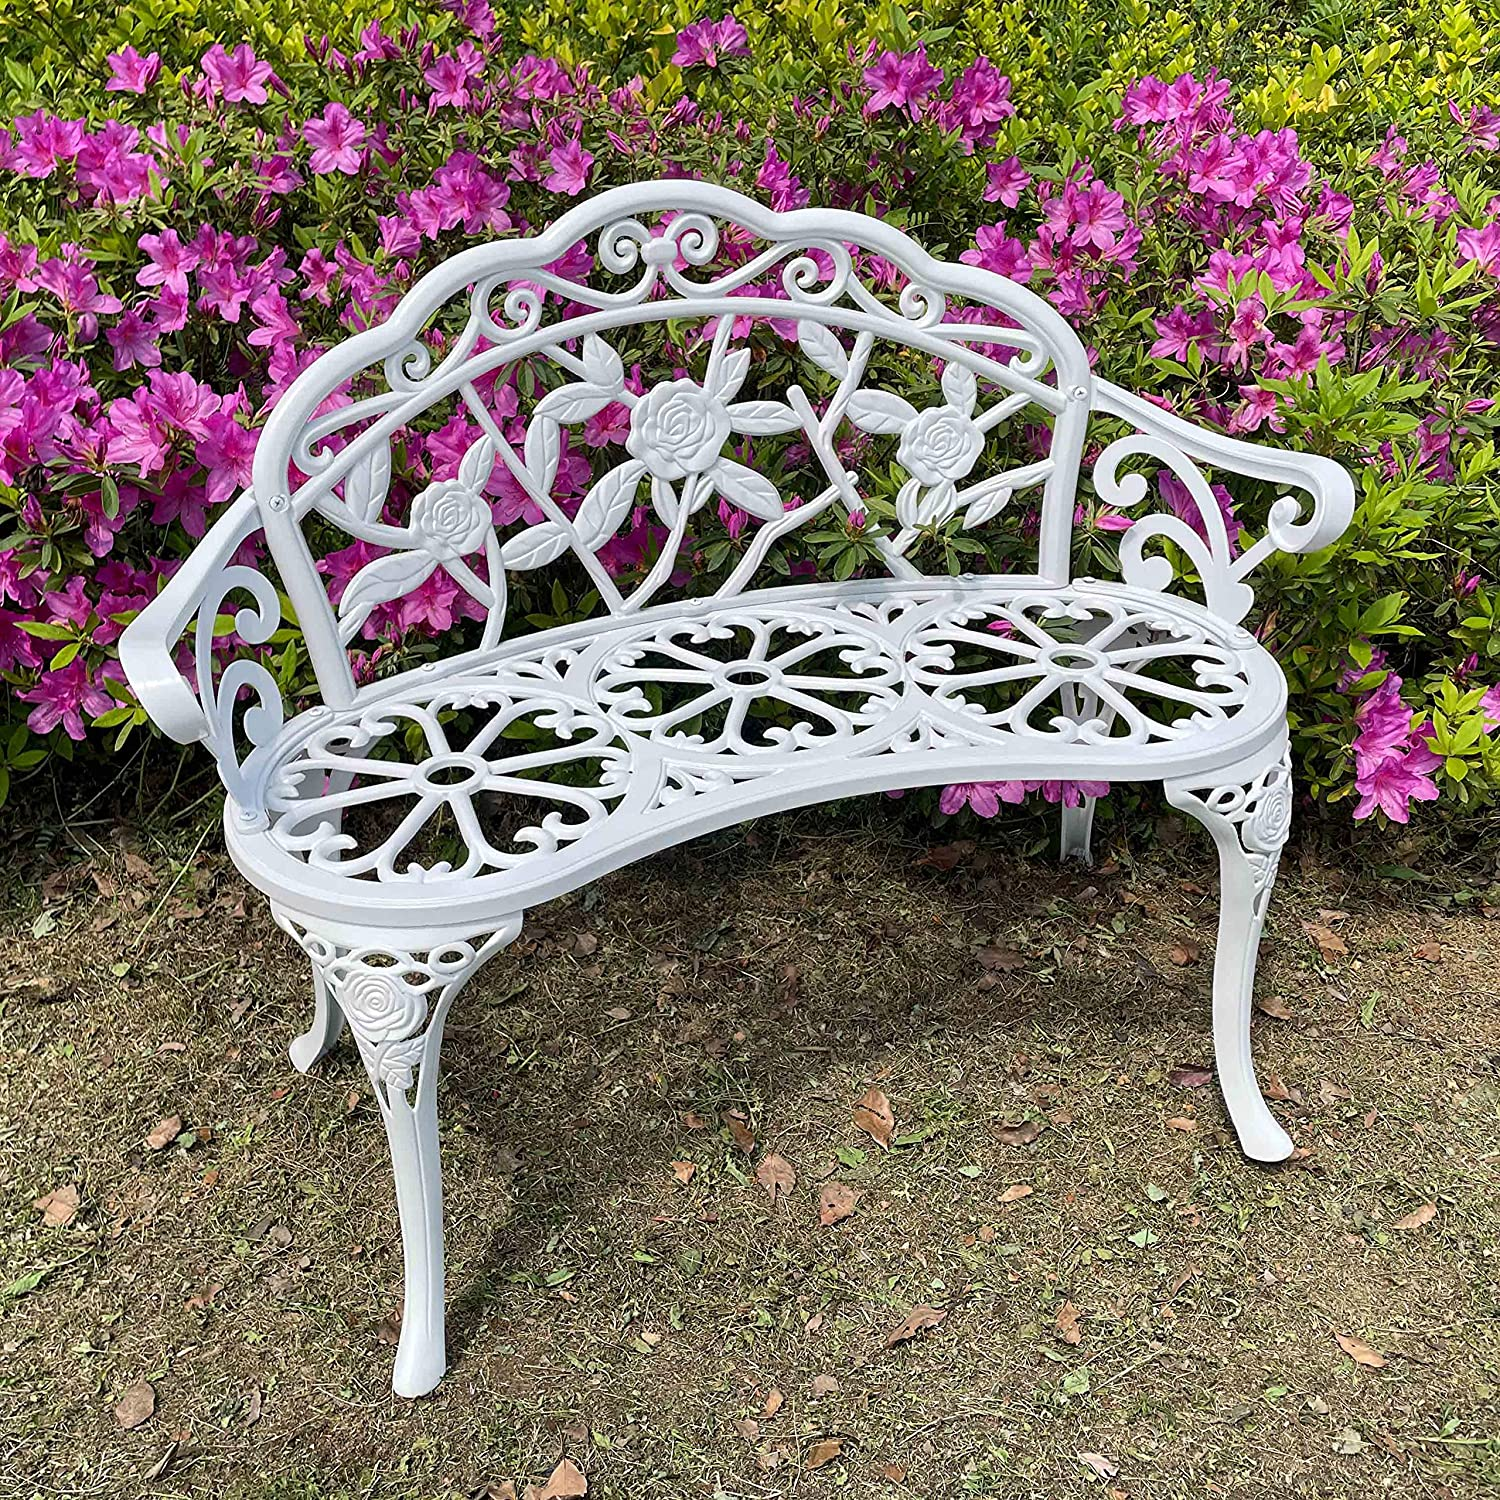 Outdoor Bench Park Garden Bench, All Chair Anti Rust Cast Aluminum Patio Yard Bench Carved Rose Loveseat Bench for Backyard, Porch, Balcony, Lawn (White)